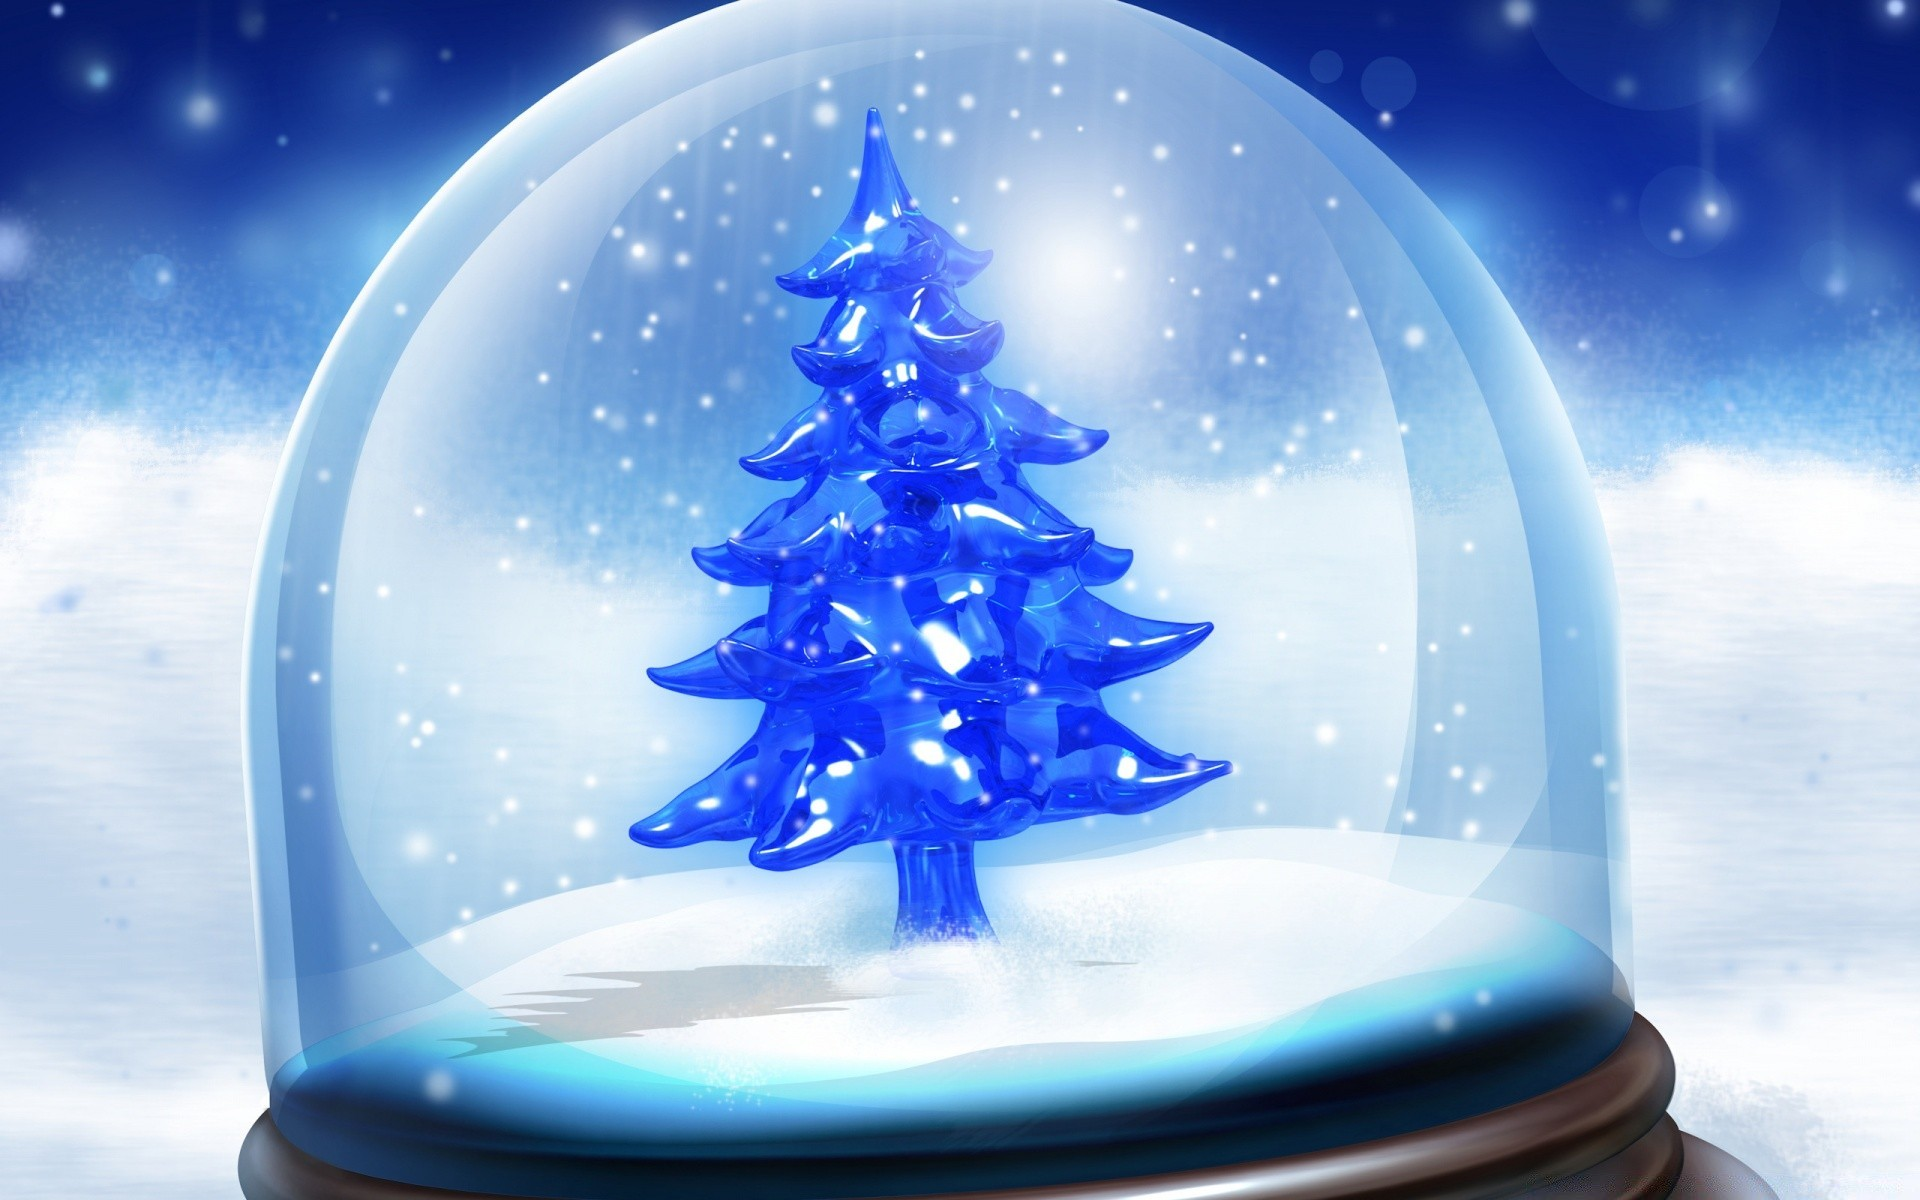 Christmas Snow Globe IPhone Wallpapers For Free